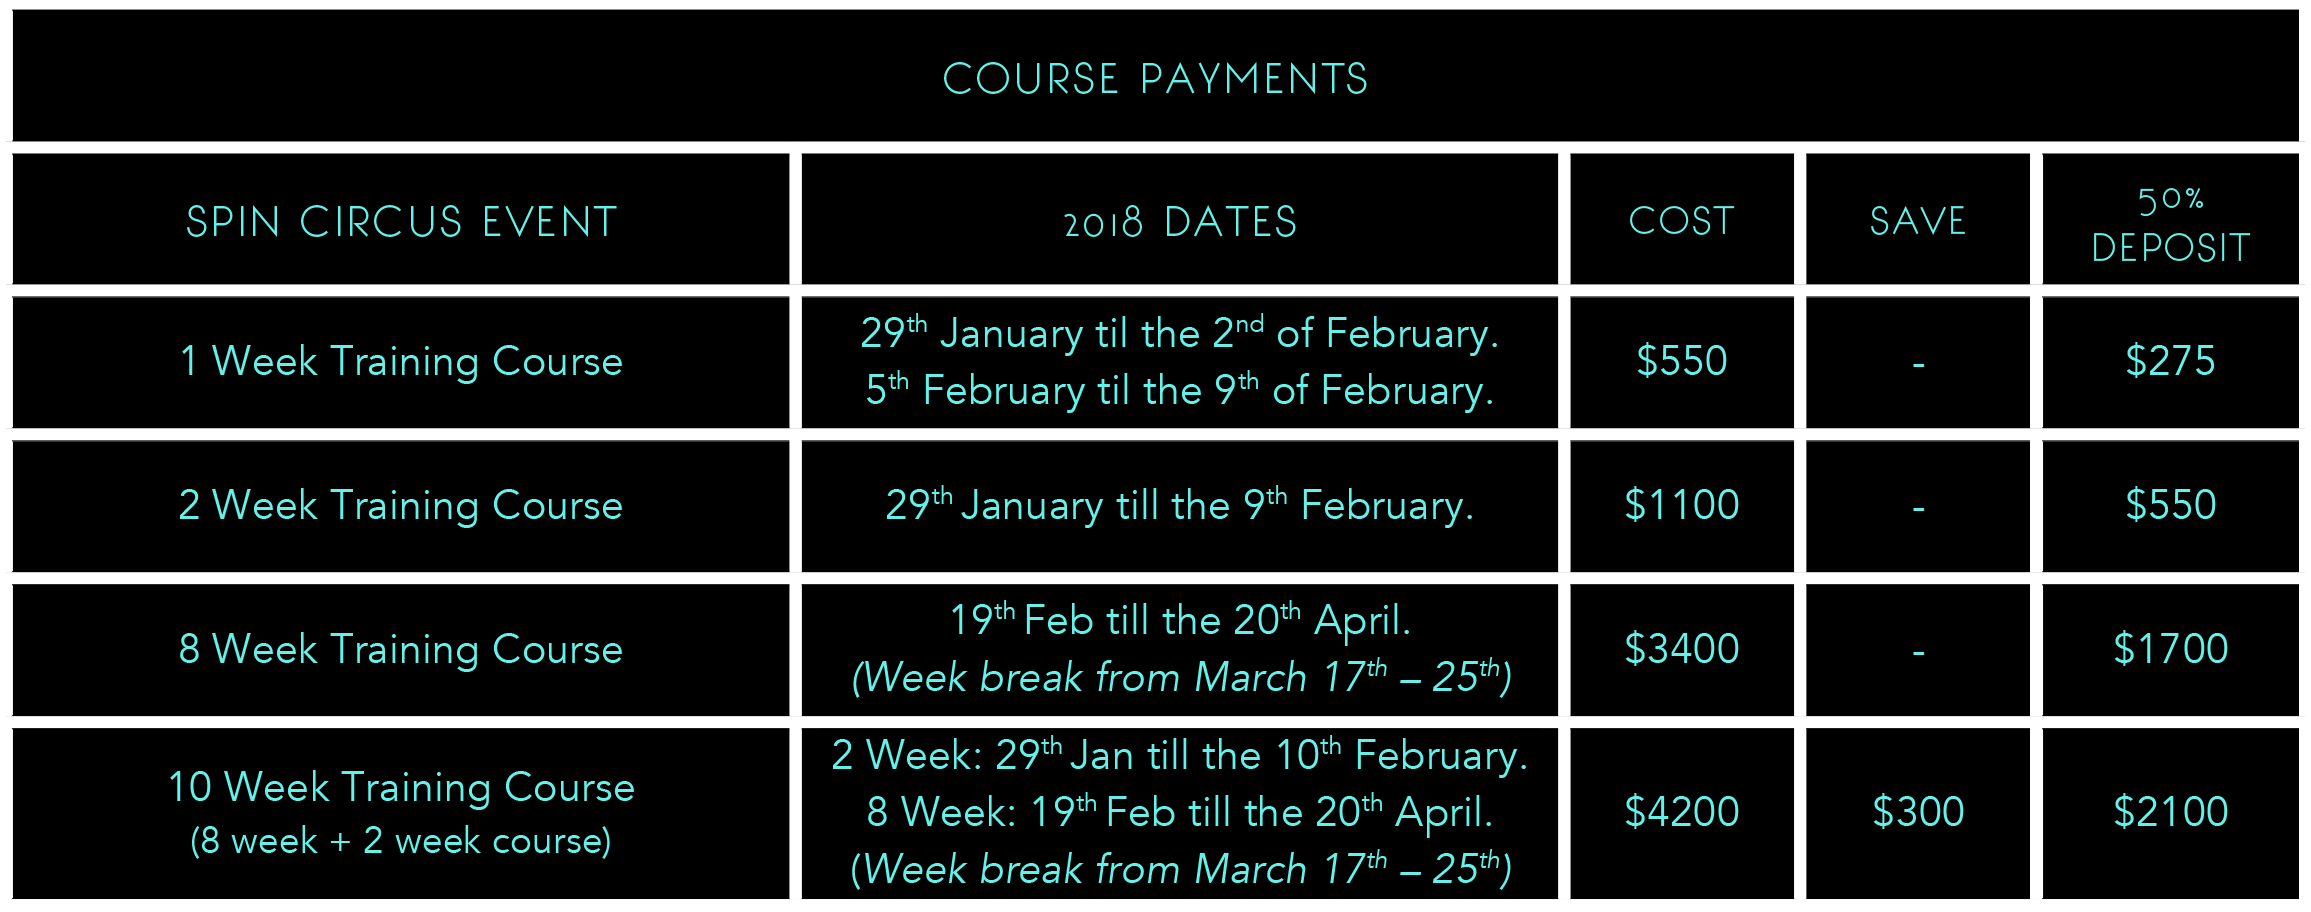 Course Payments deposit prices.png